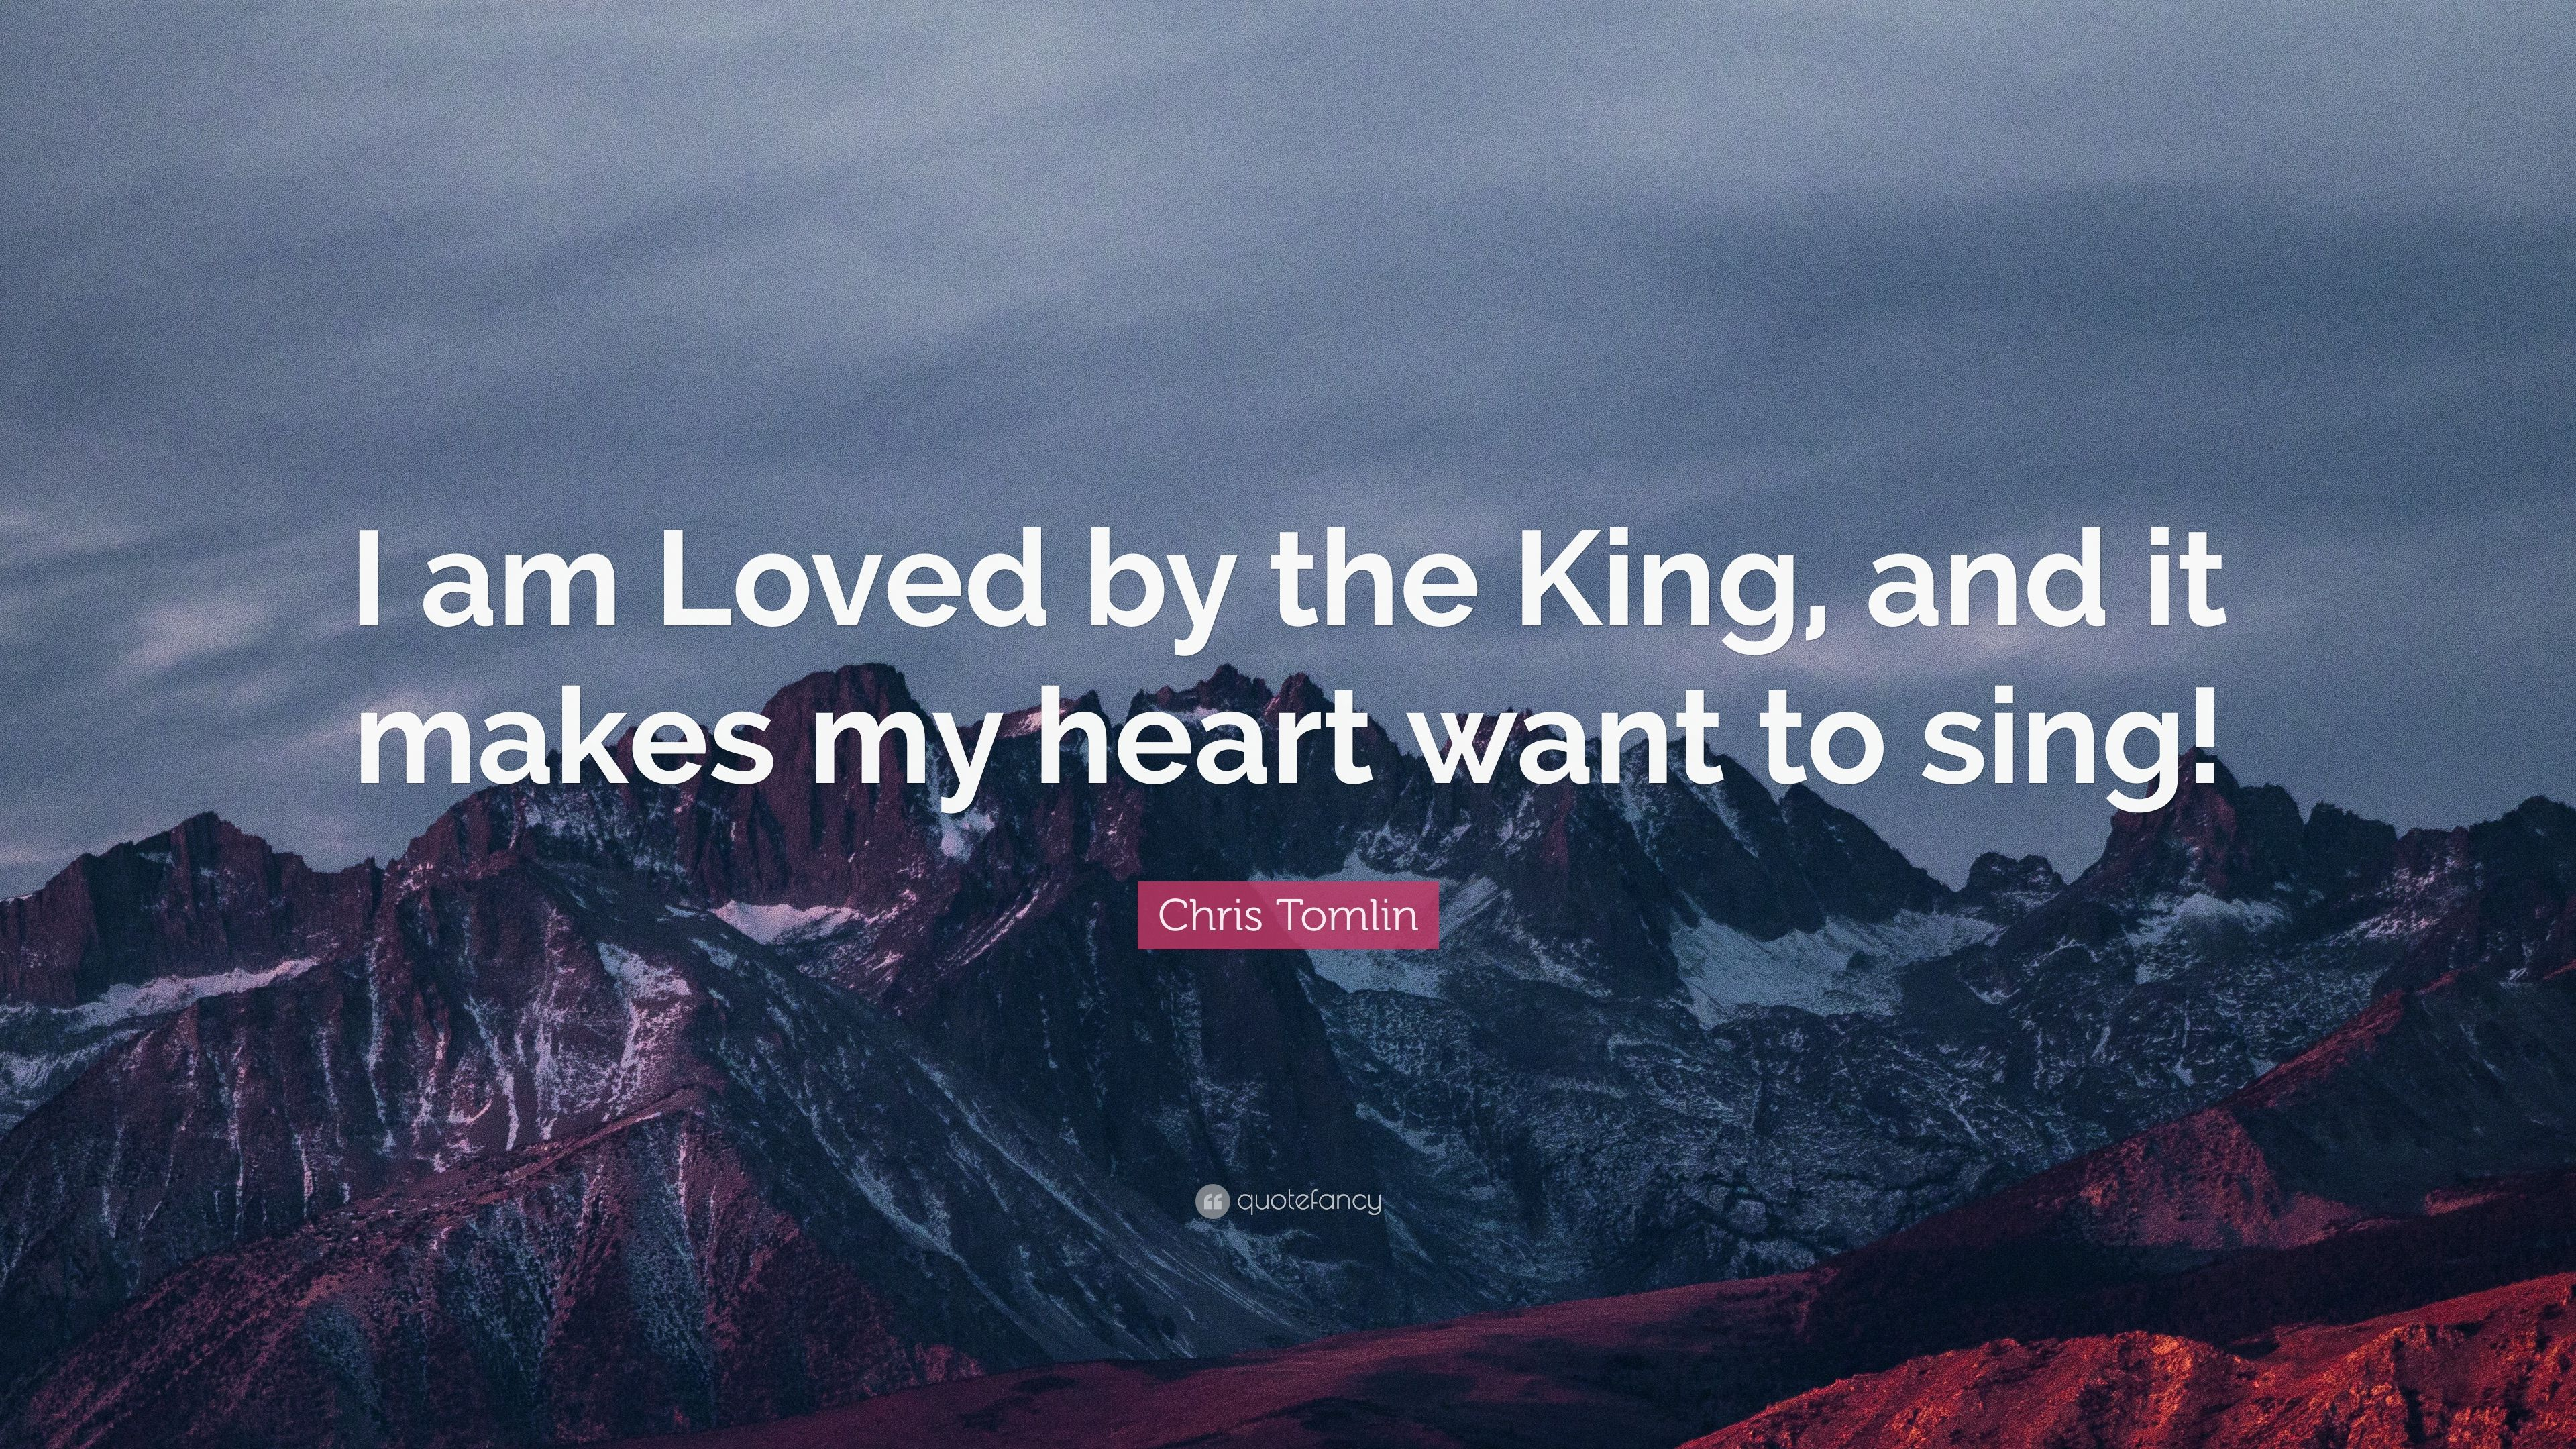 Chris Tomlin Quote I Am Loved By The King And It Makes My Heart